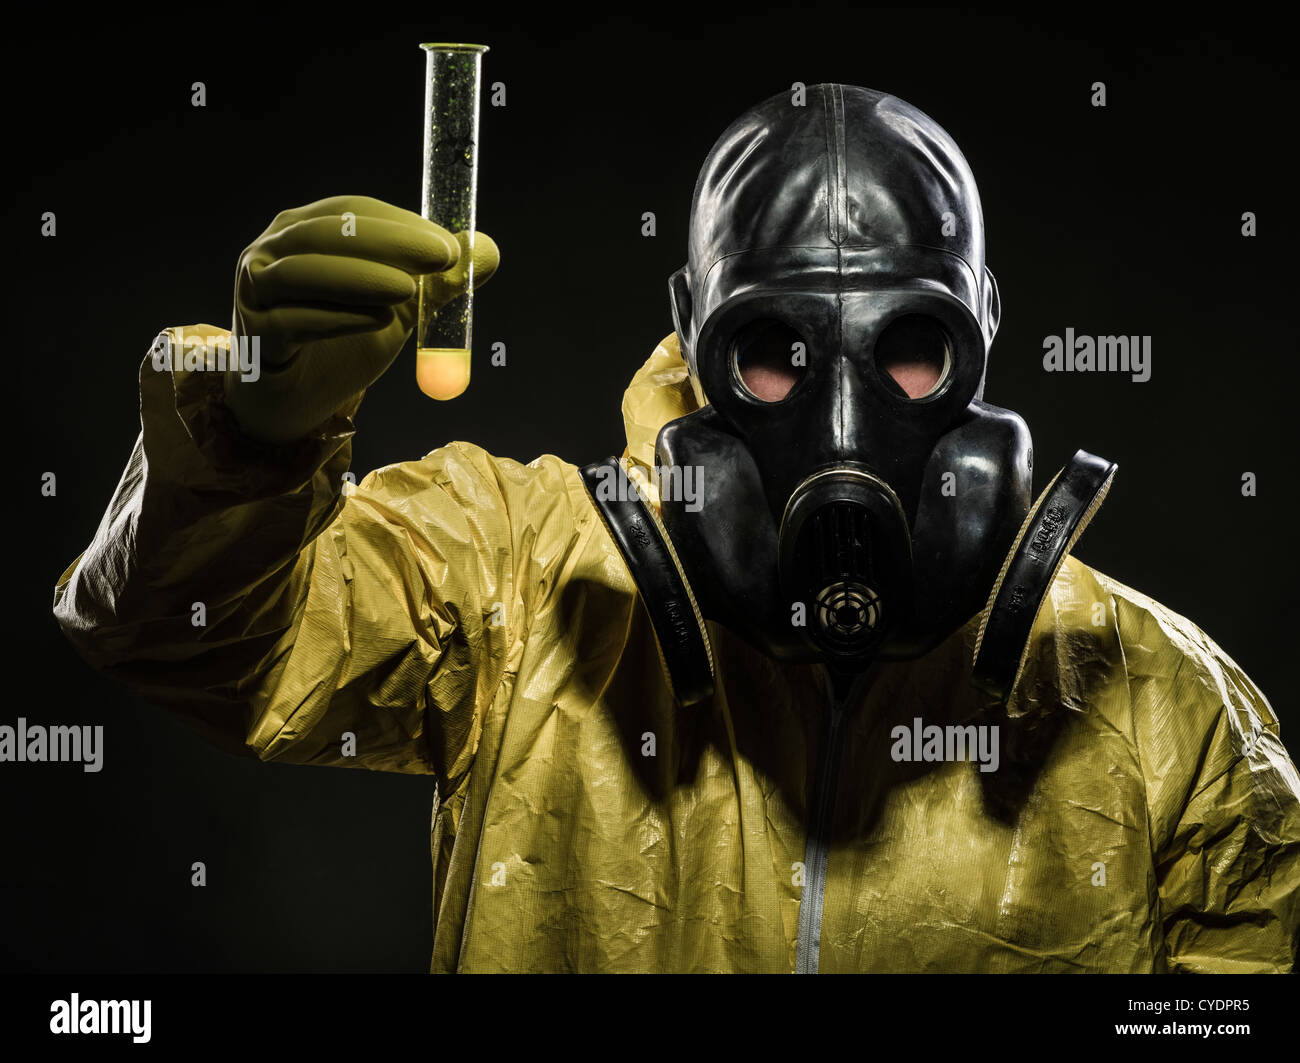 Man with gas mask and hazmat suit - Stock Image